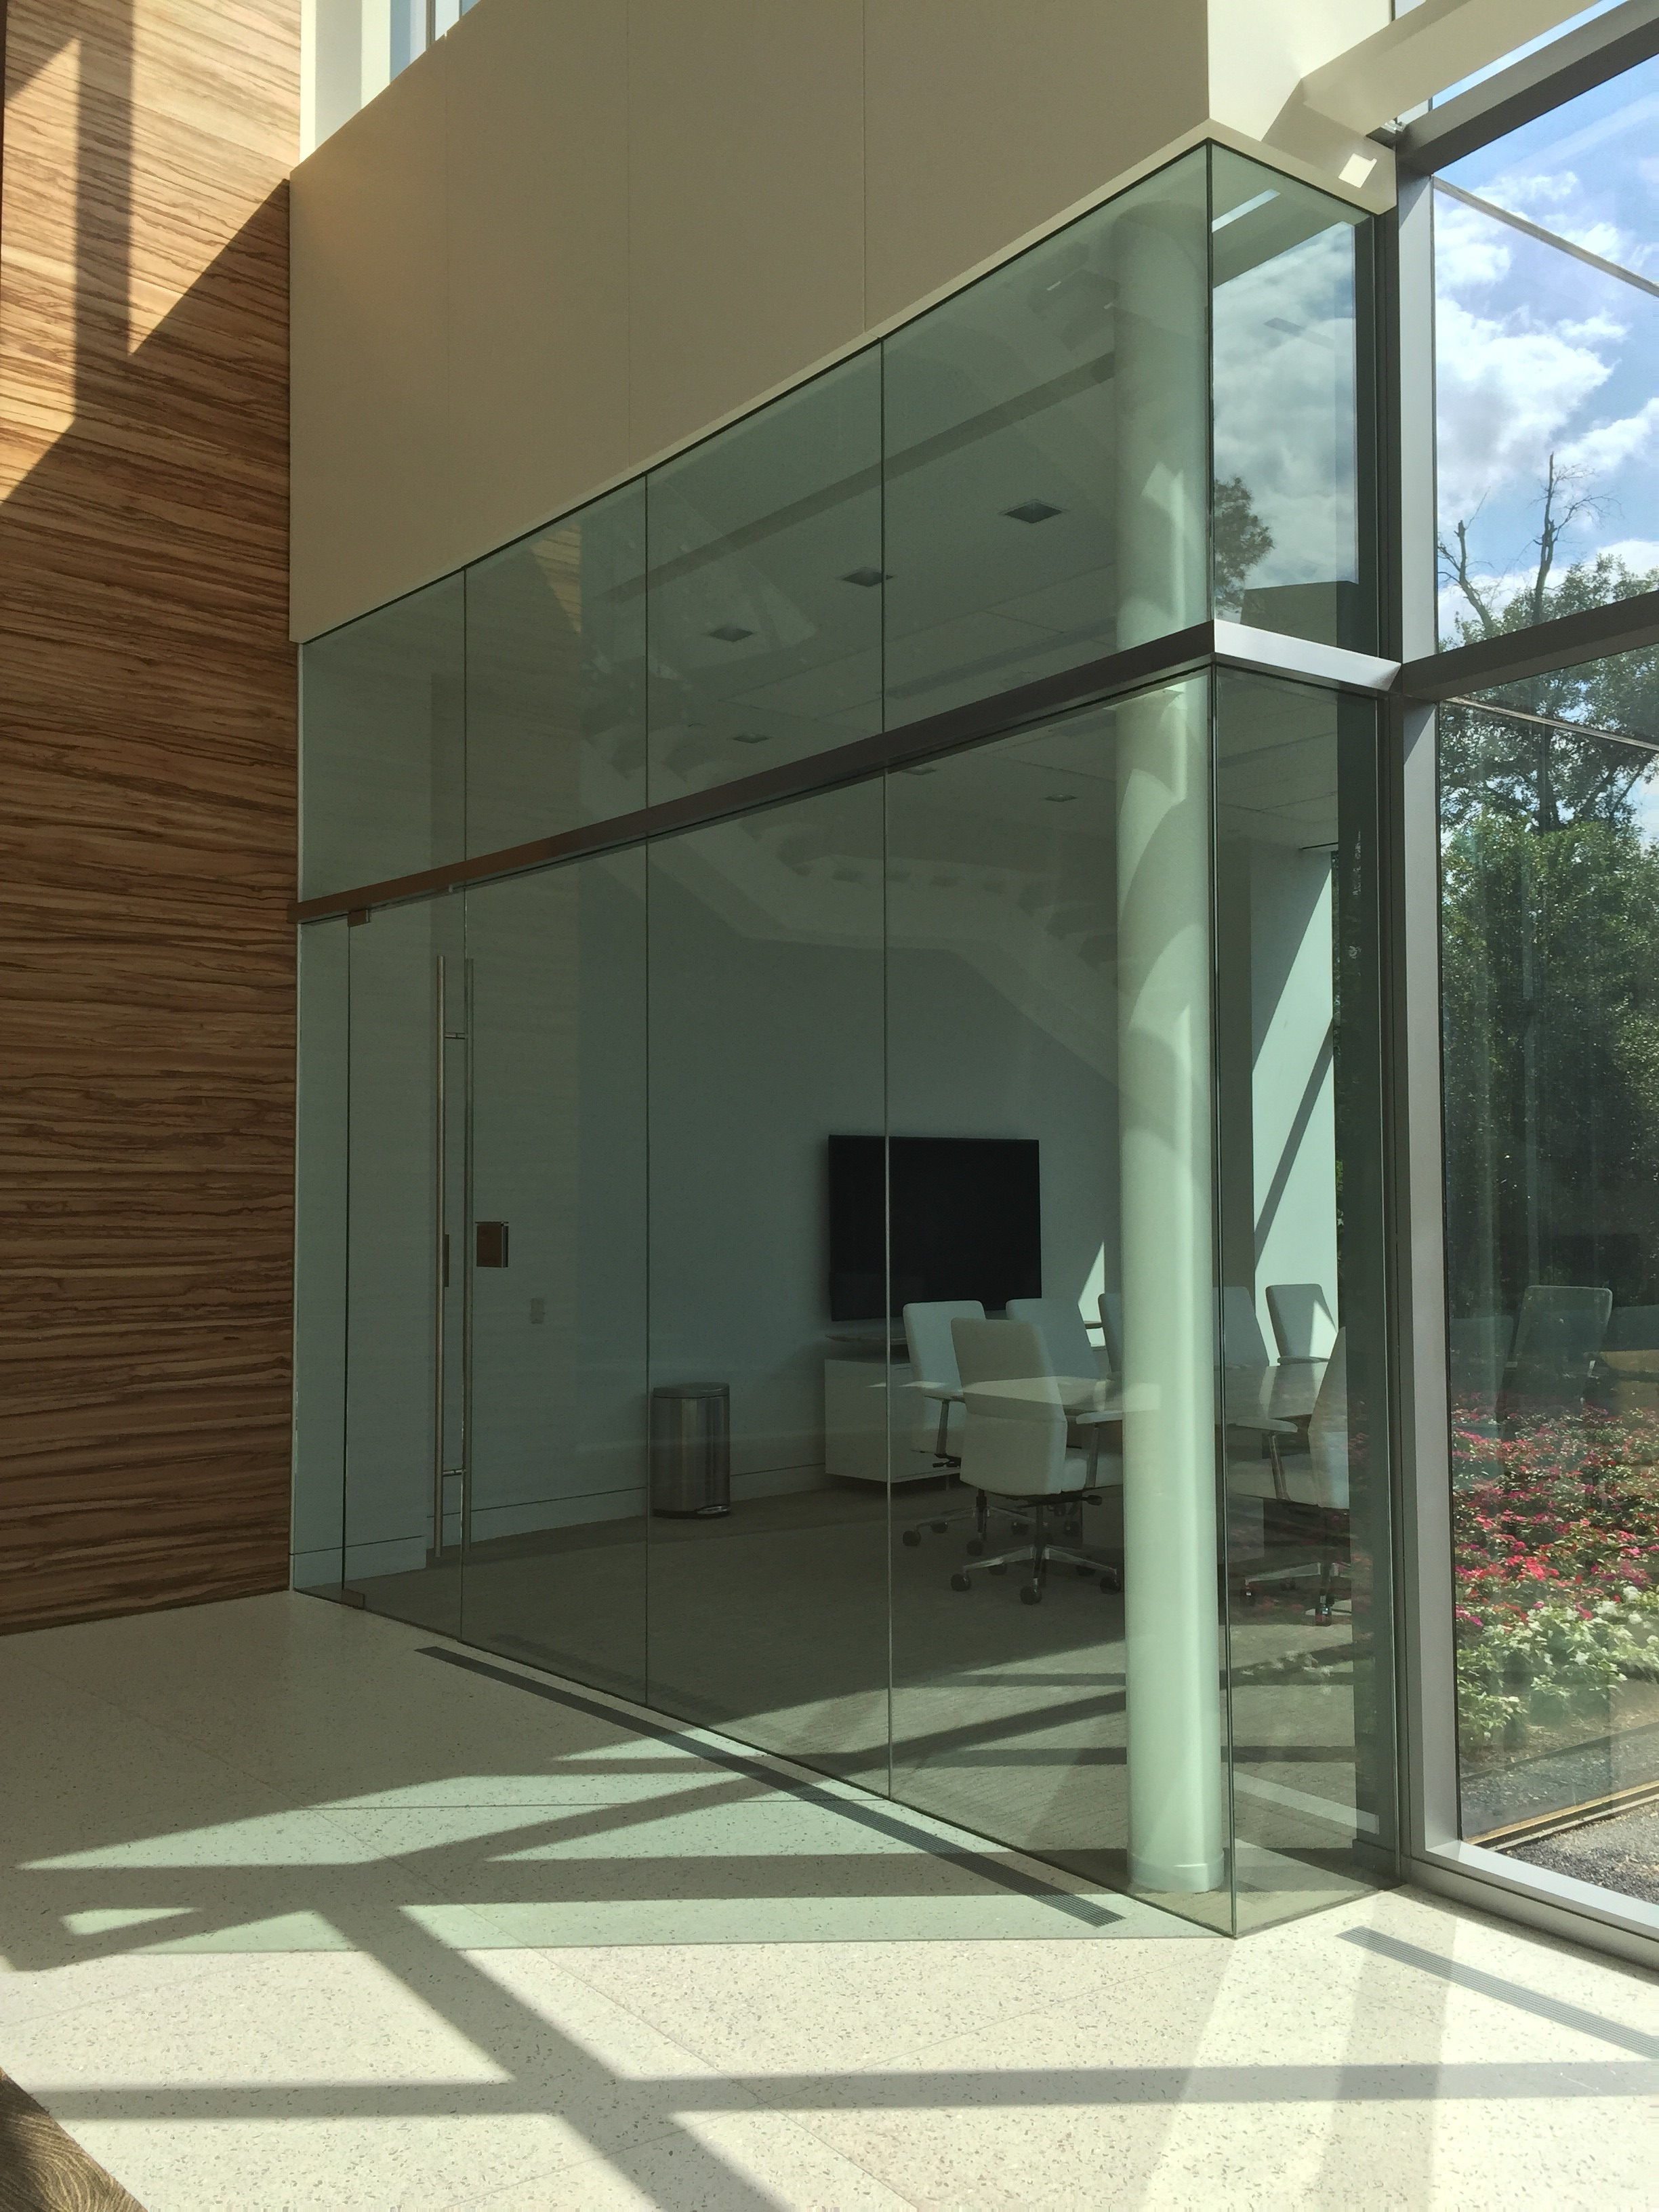 Southwest energy Glass wall door systems